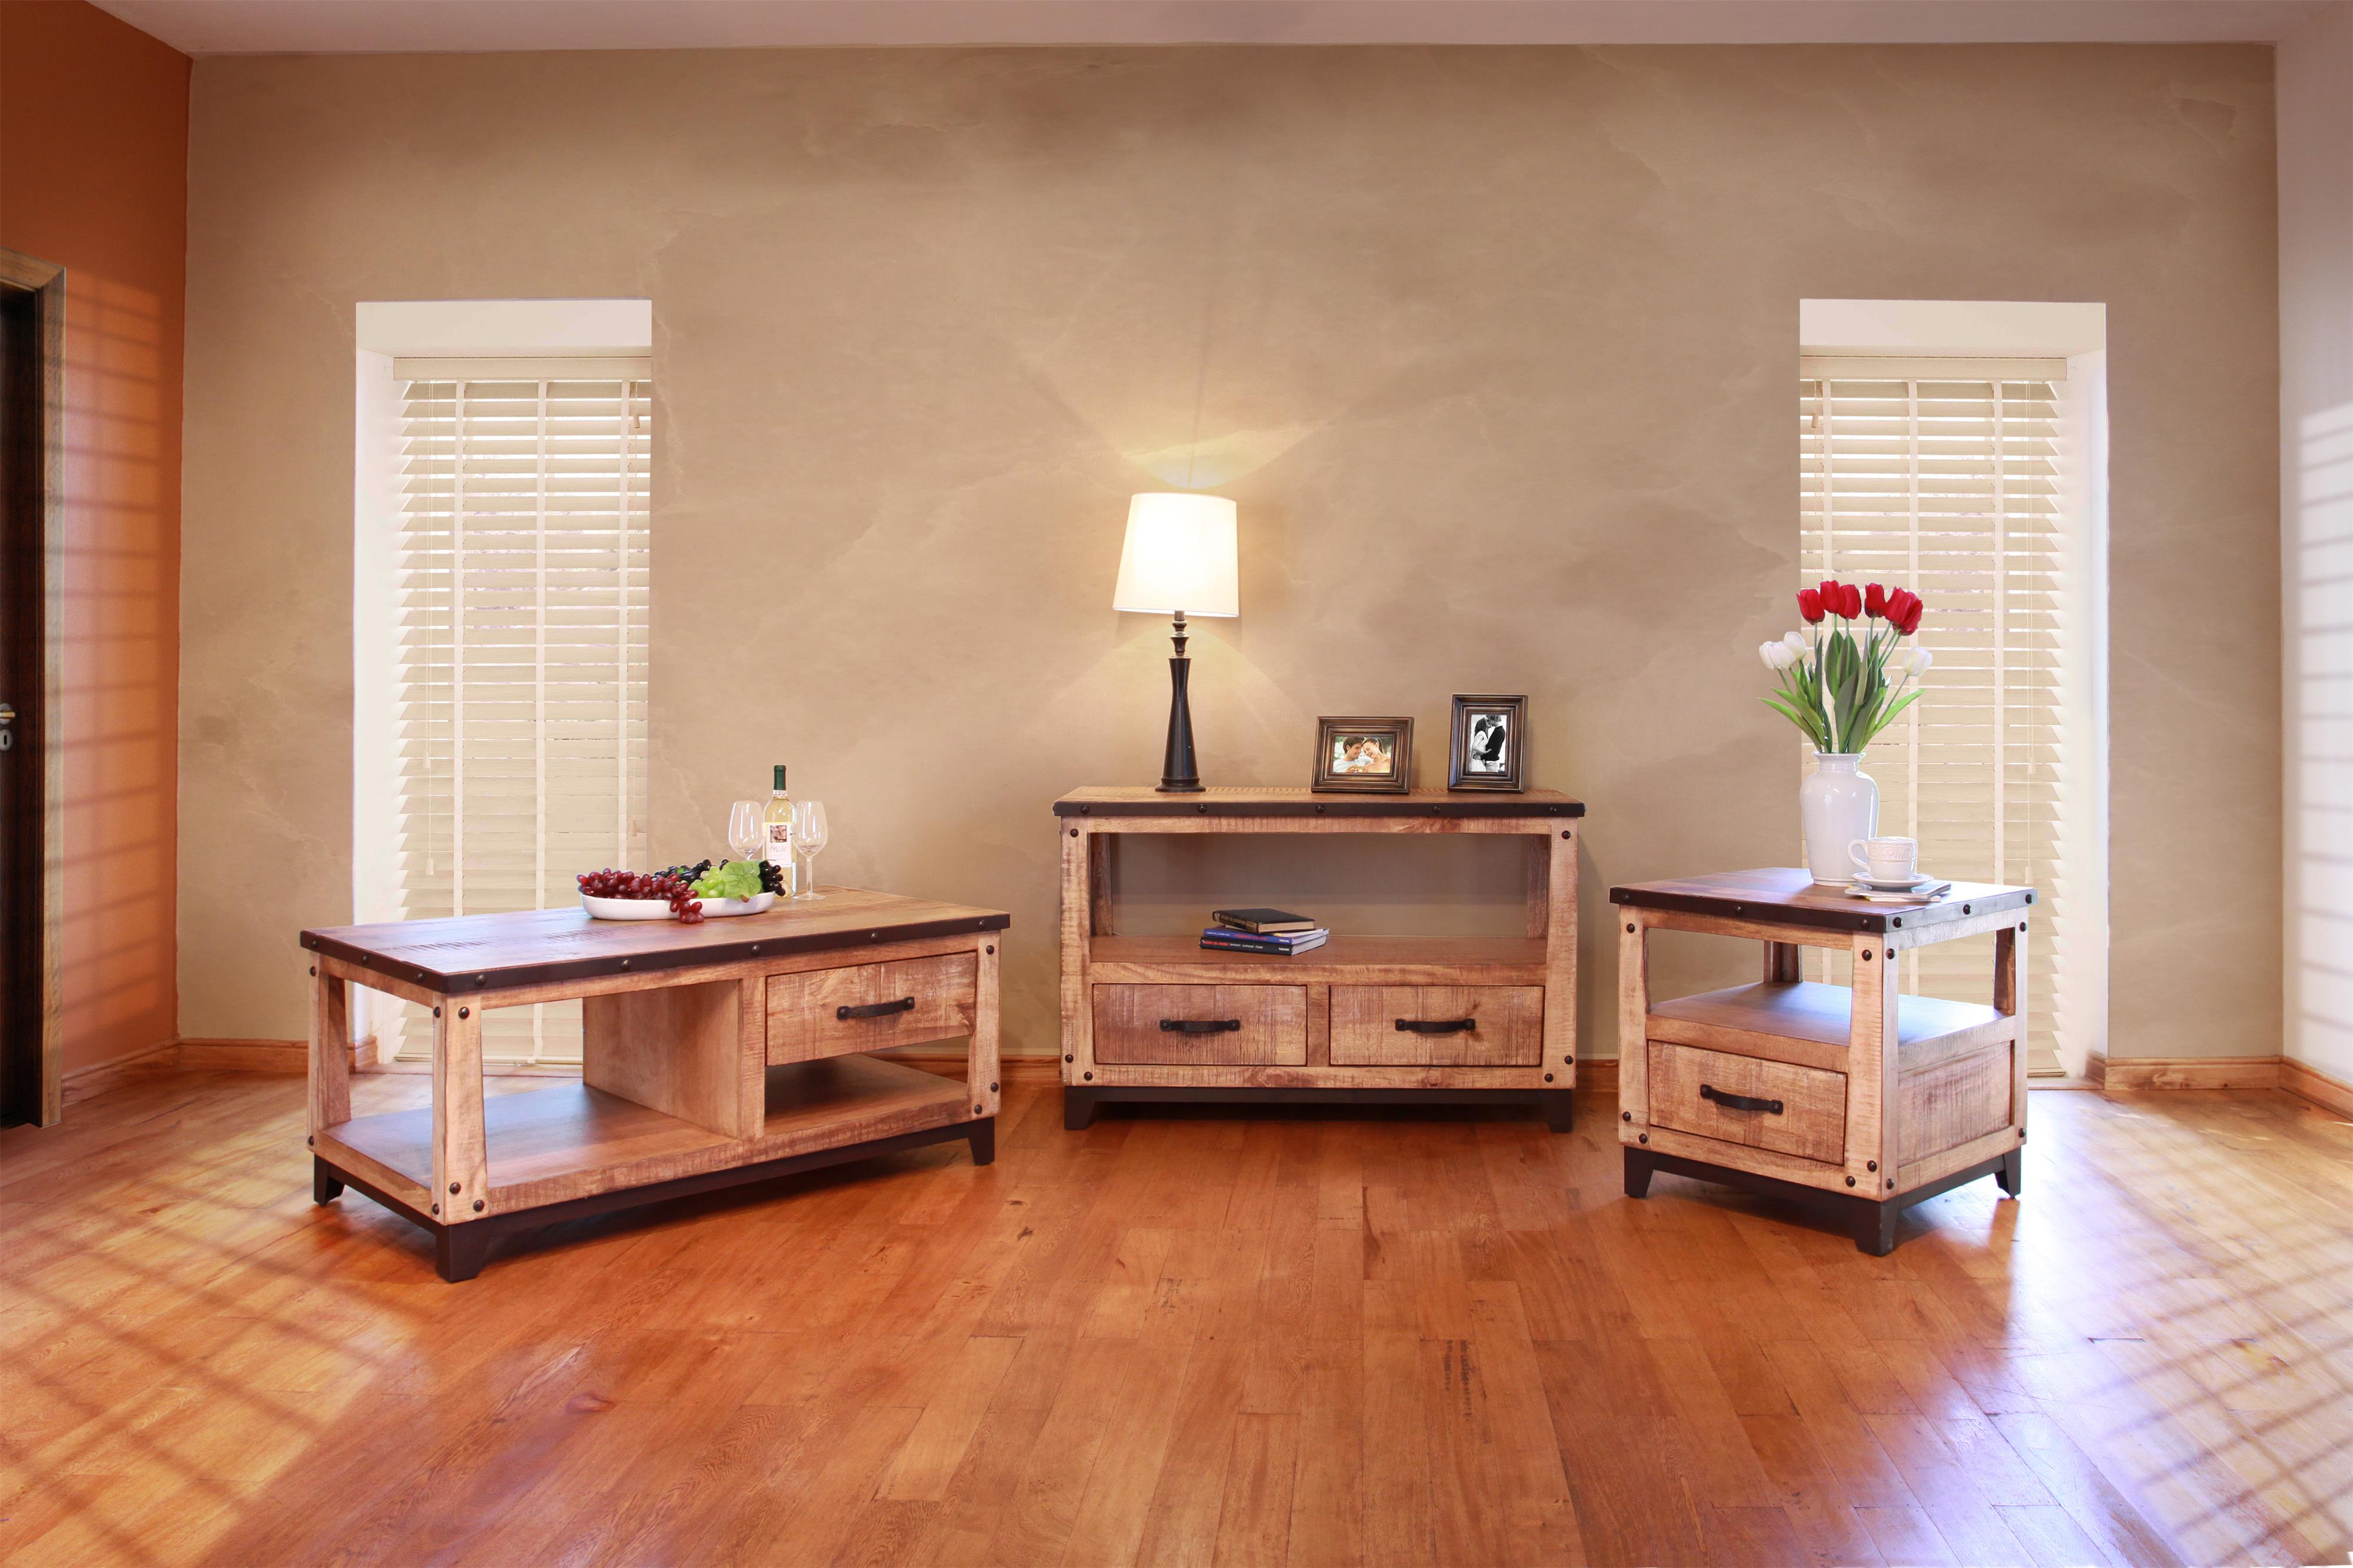 Artisan Home Furniture - by International Furniture Direct, LLC | Snappy  Storage Solutions | Pinterest | Furniture direct, Storage and House